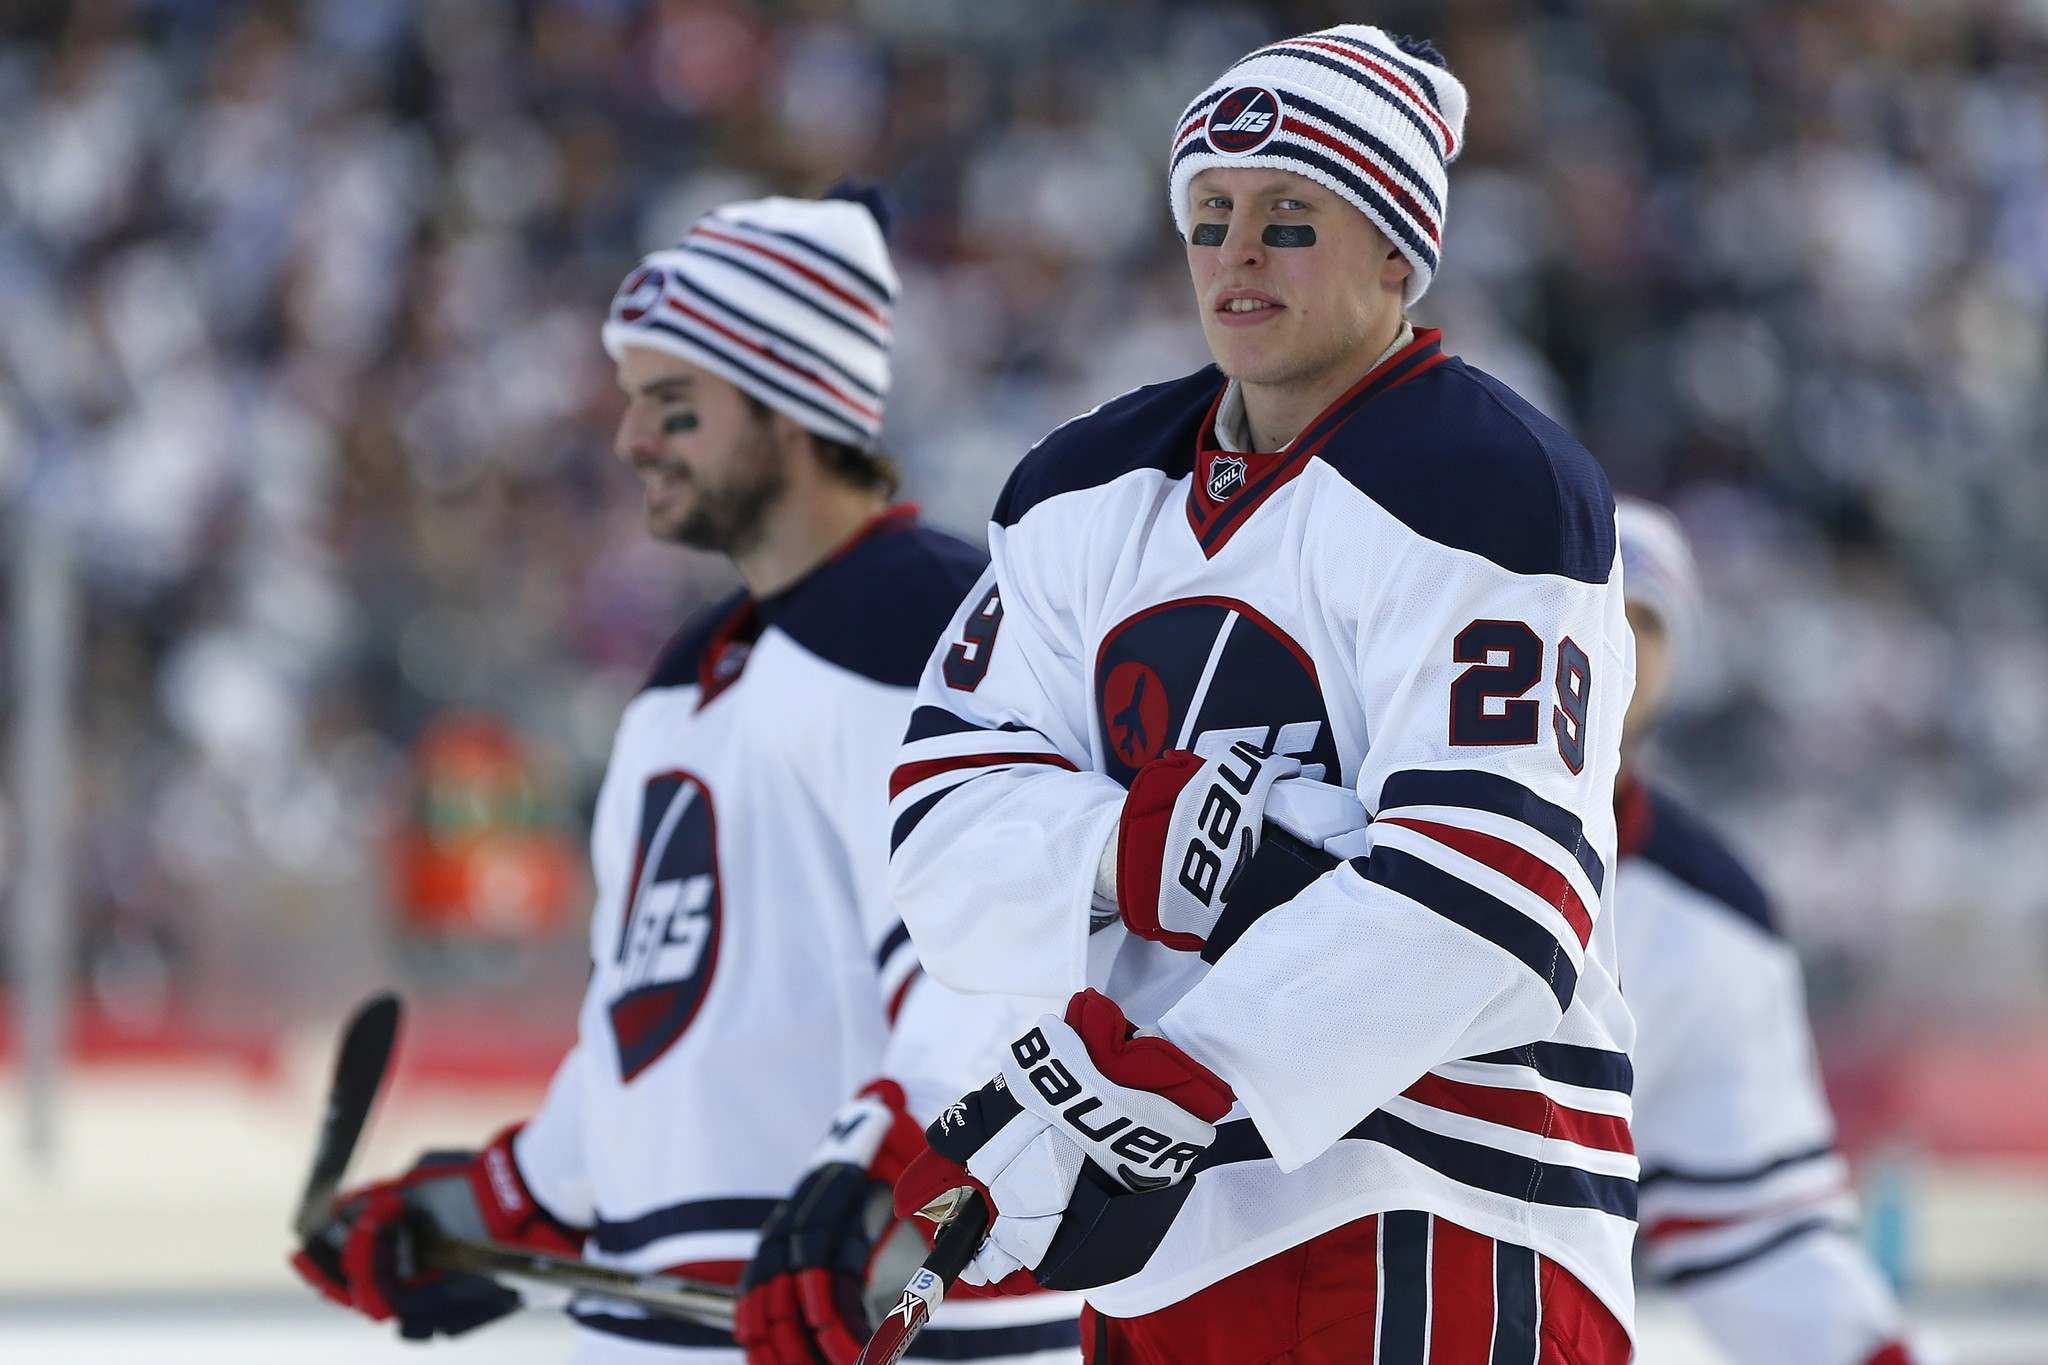 JOHN WOODS / THE CANADIAN PRESS</p><p>Winnipeg Jets' Drew Stafford (12) and Patrik Laine (29) during the warmup skate at the NHL Heritage Classic in Winnipeg on Sunday.</p>